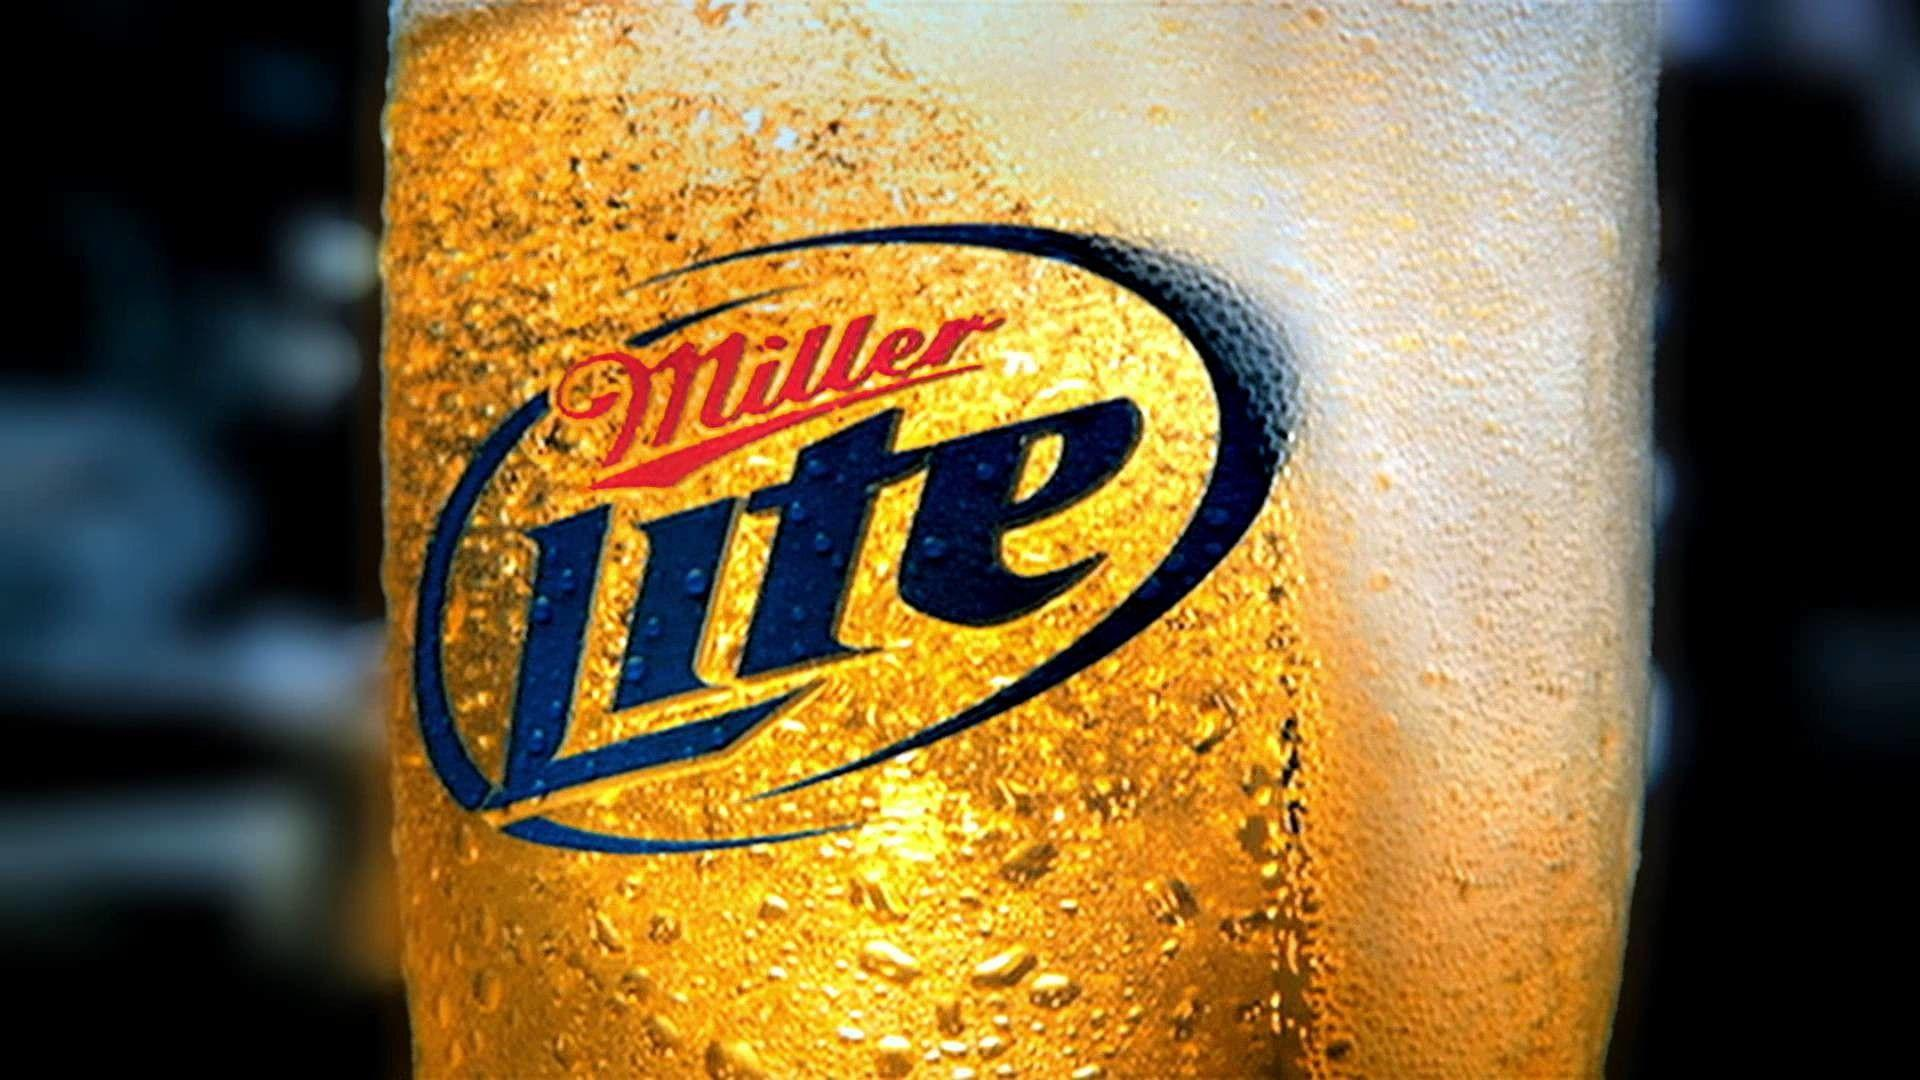 Miller Beer Wallpaper (67+ images)